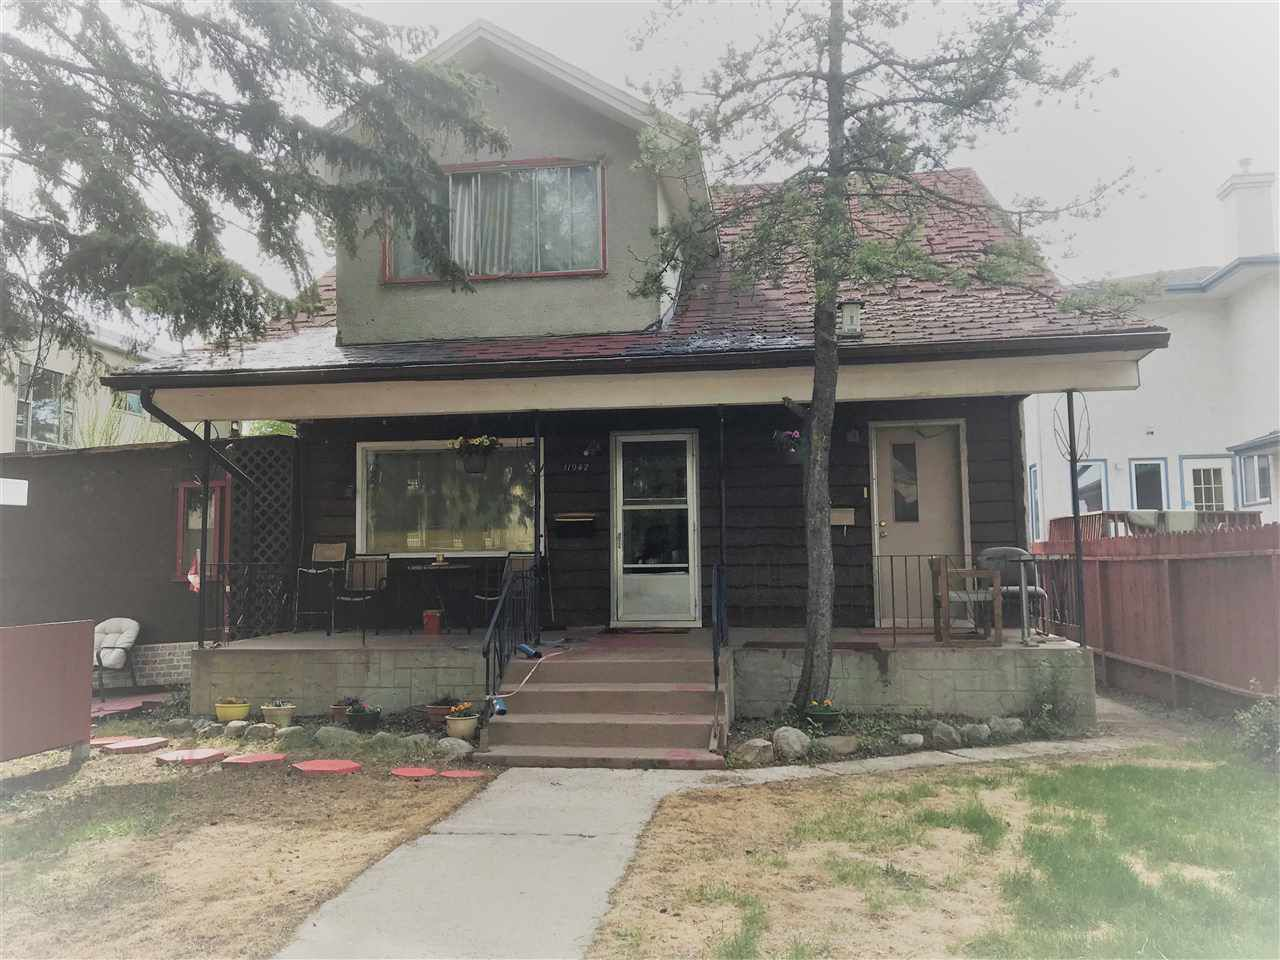 Main Photo: 11942 81 Street in Edmonton: Zone 05 House for sale : MLS®# E4100217